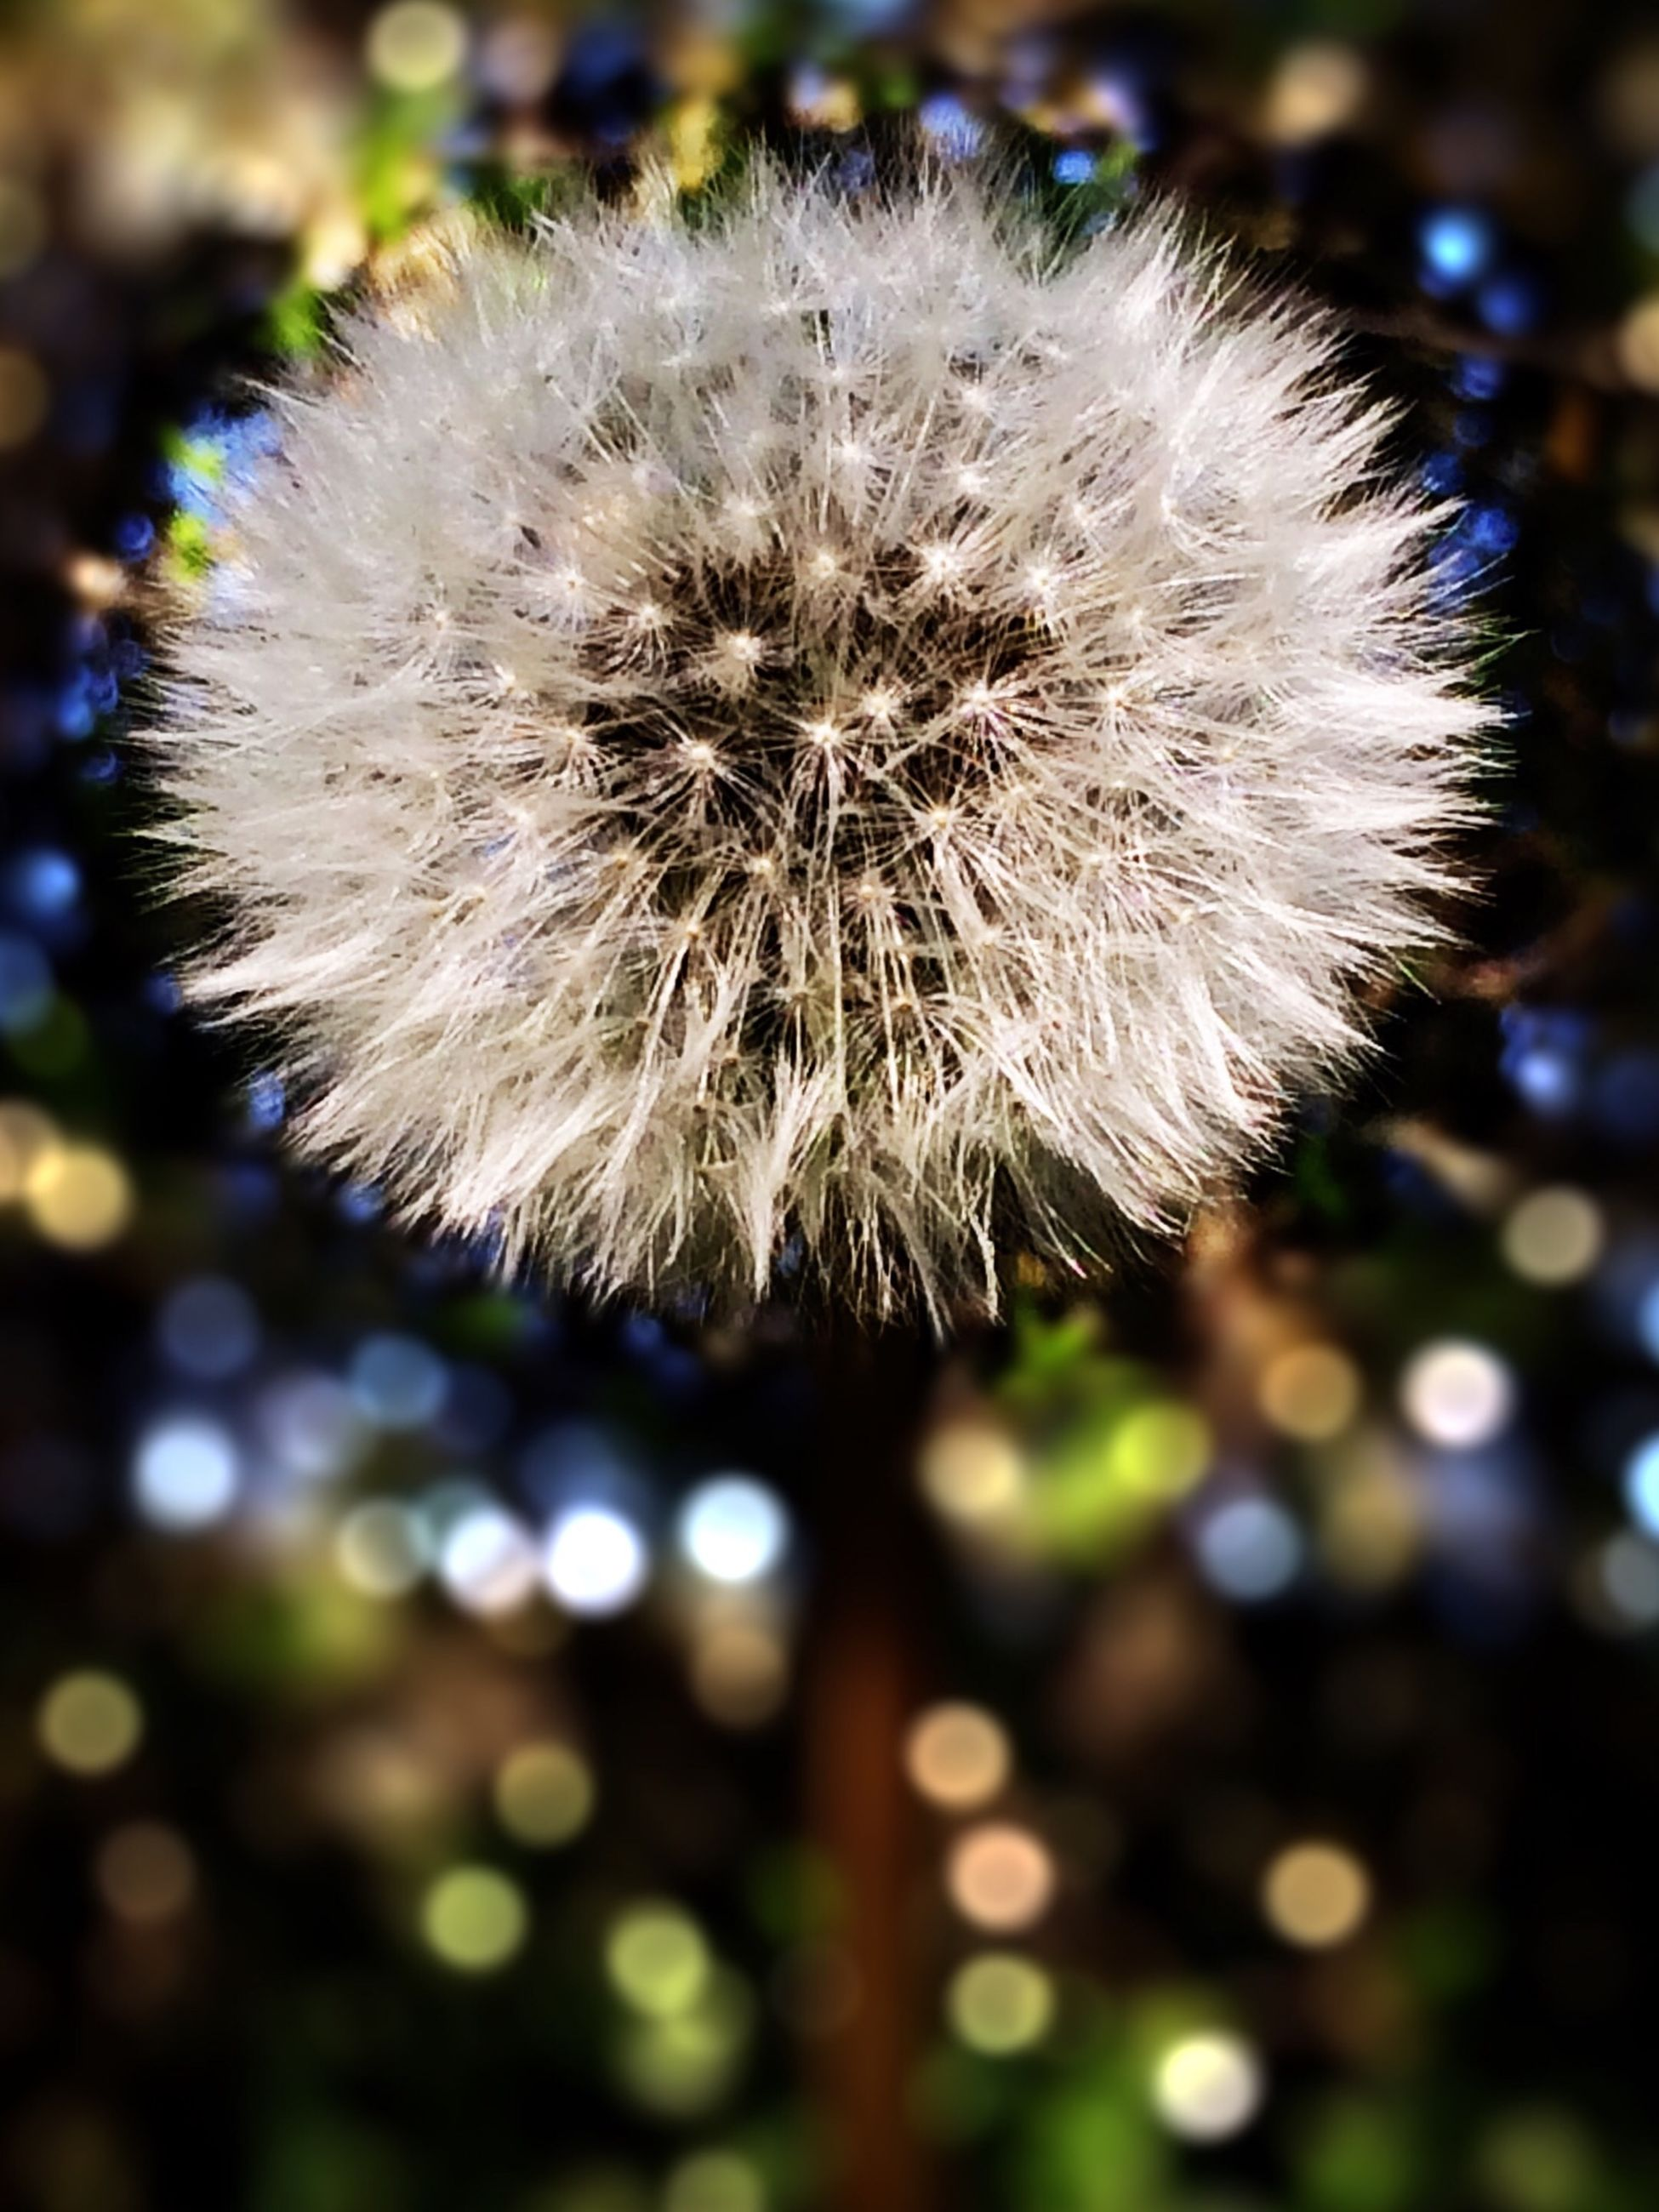 dandelion, flower, fragility, flower head, close-up, freshness, growth, white color, beauty in nature, focus on foreground, nature, single flower, softness, dandelion seed, uncultivated, white, selective focus, wildflower, outdoors, in bloom